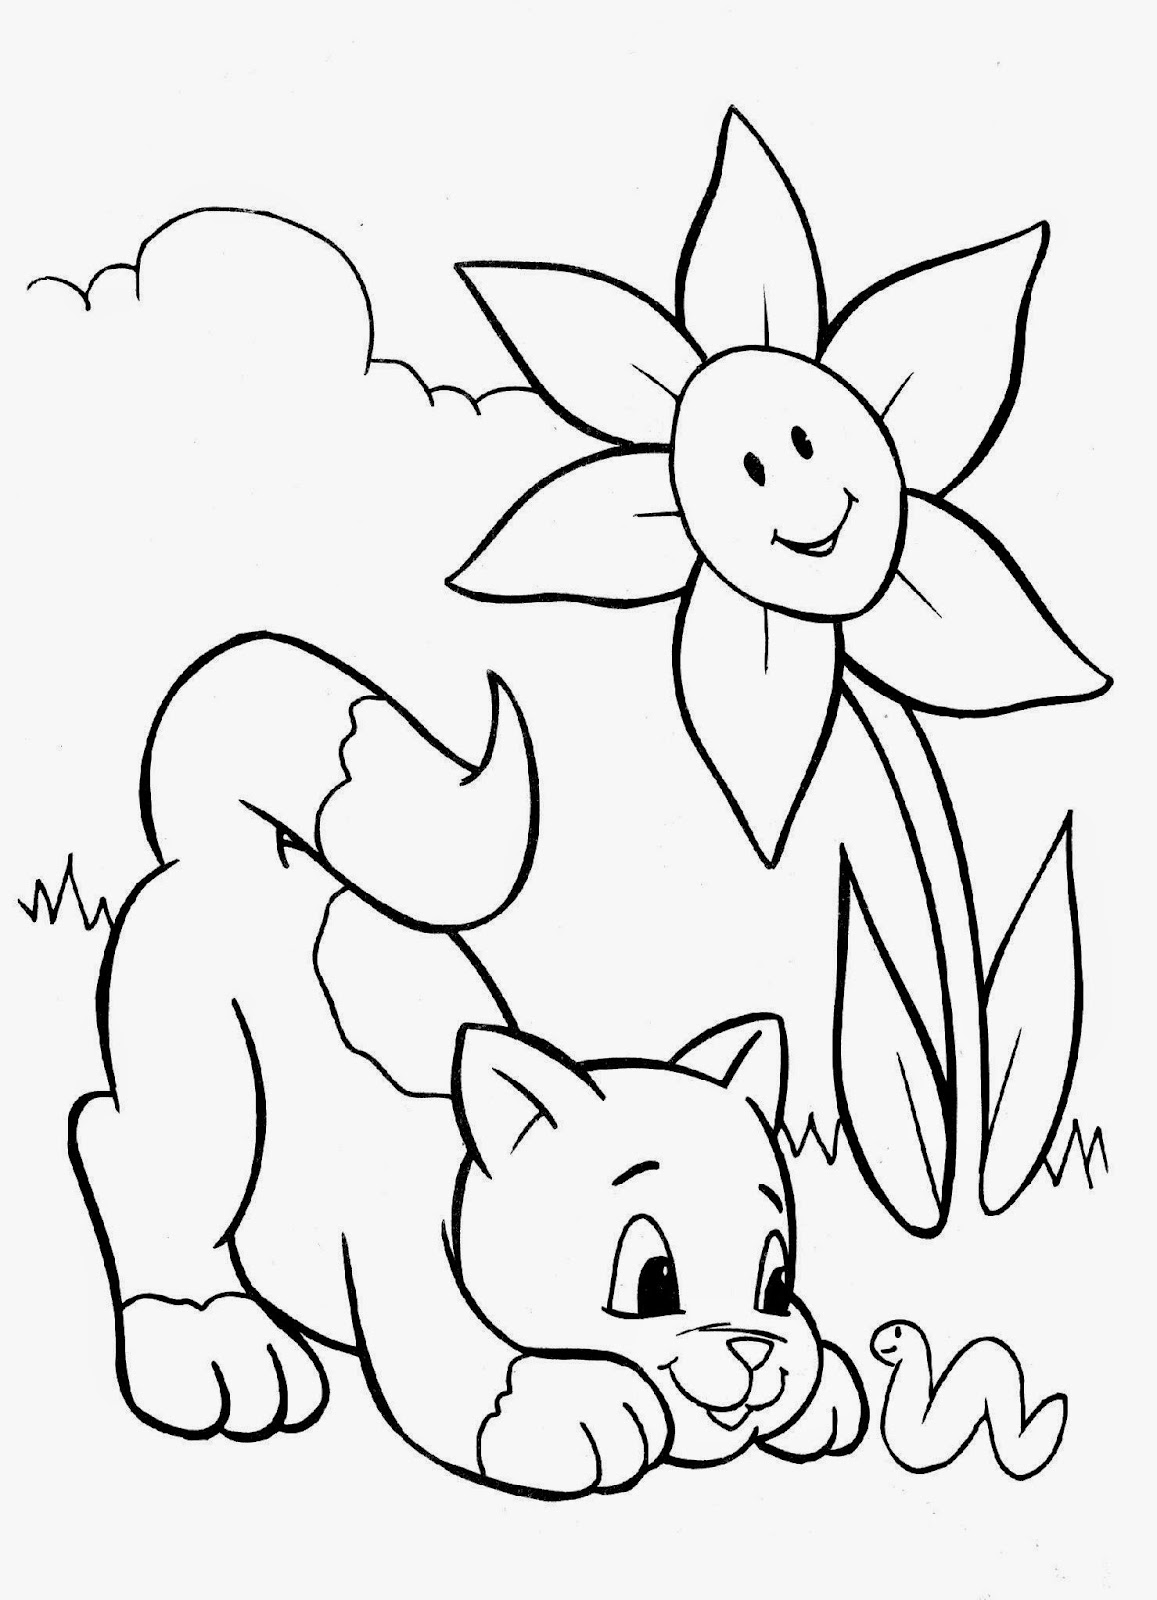 92 Crayola Coloring Pages Easter Bunny